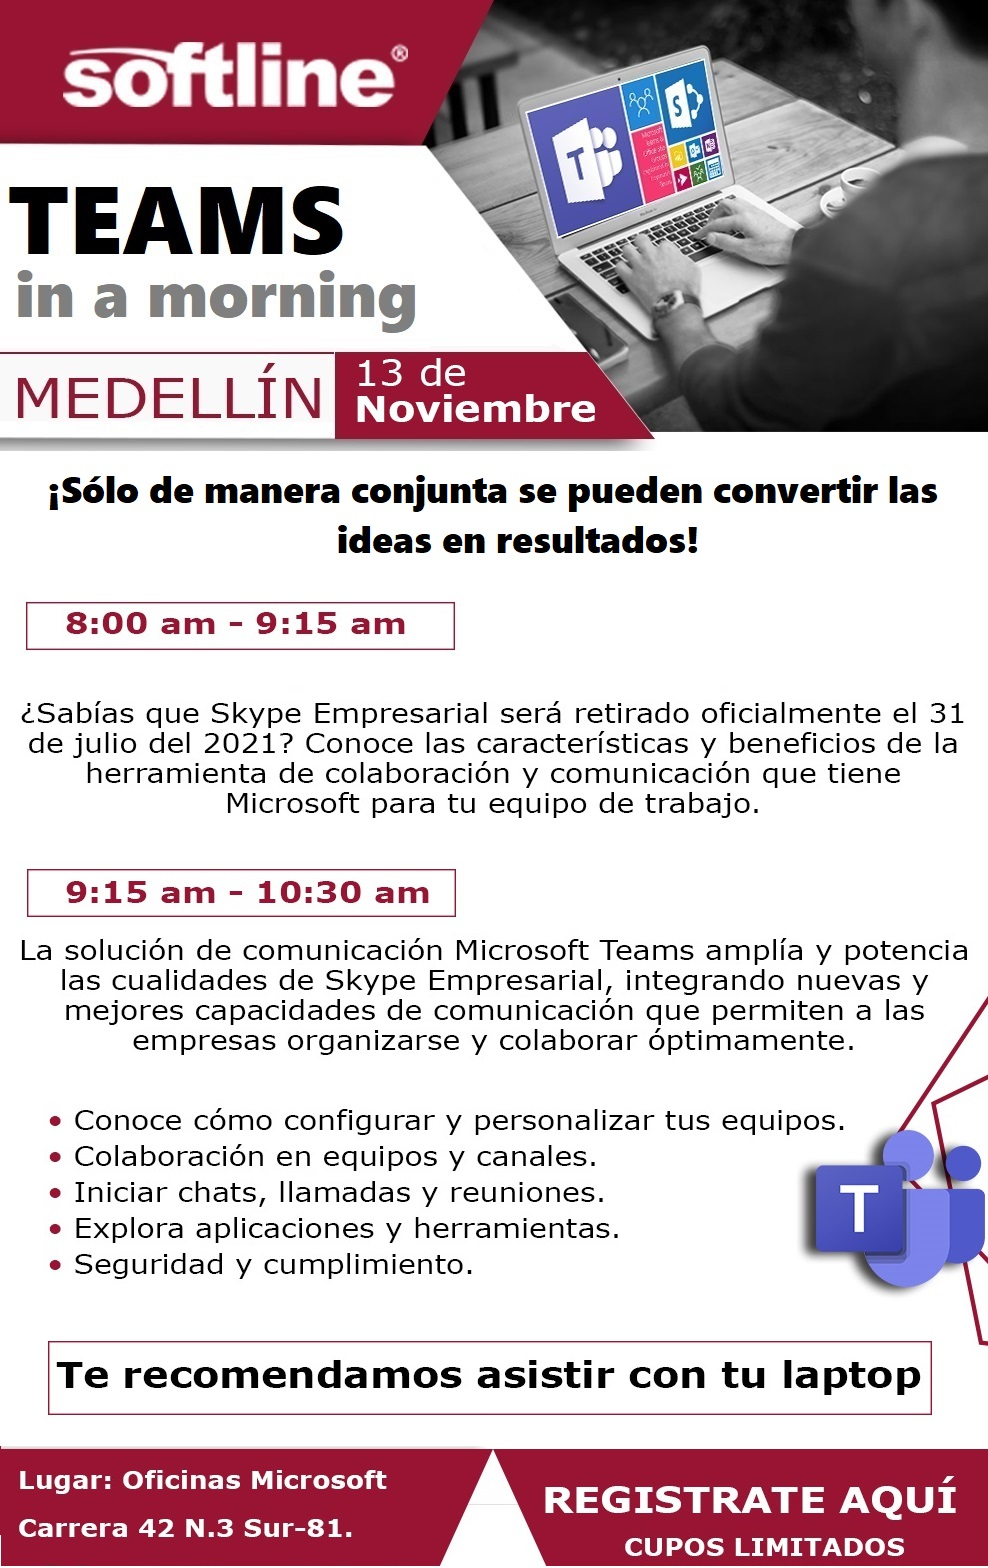 TEAMS NOV  MEDELLIN